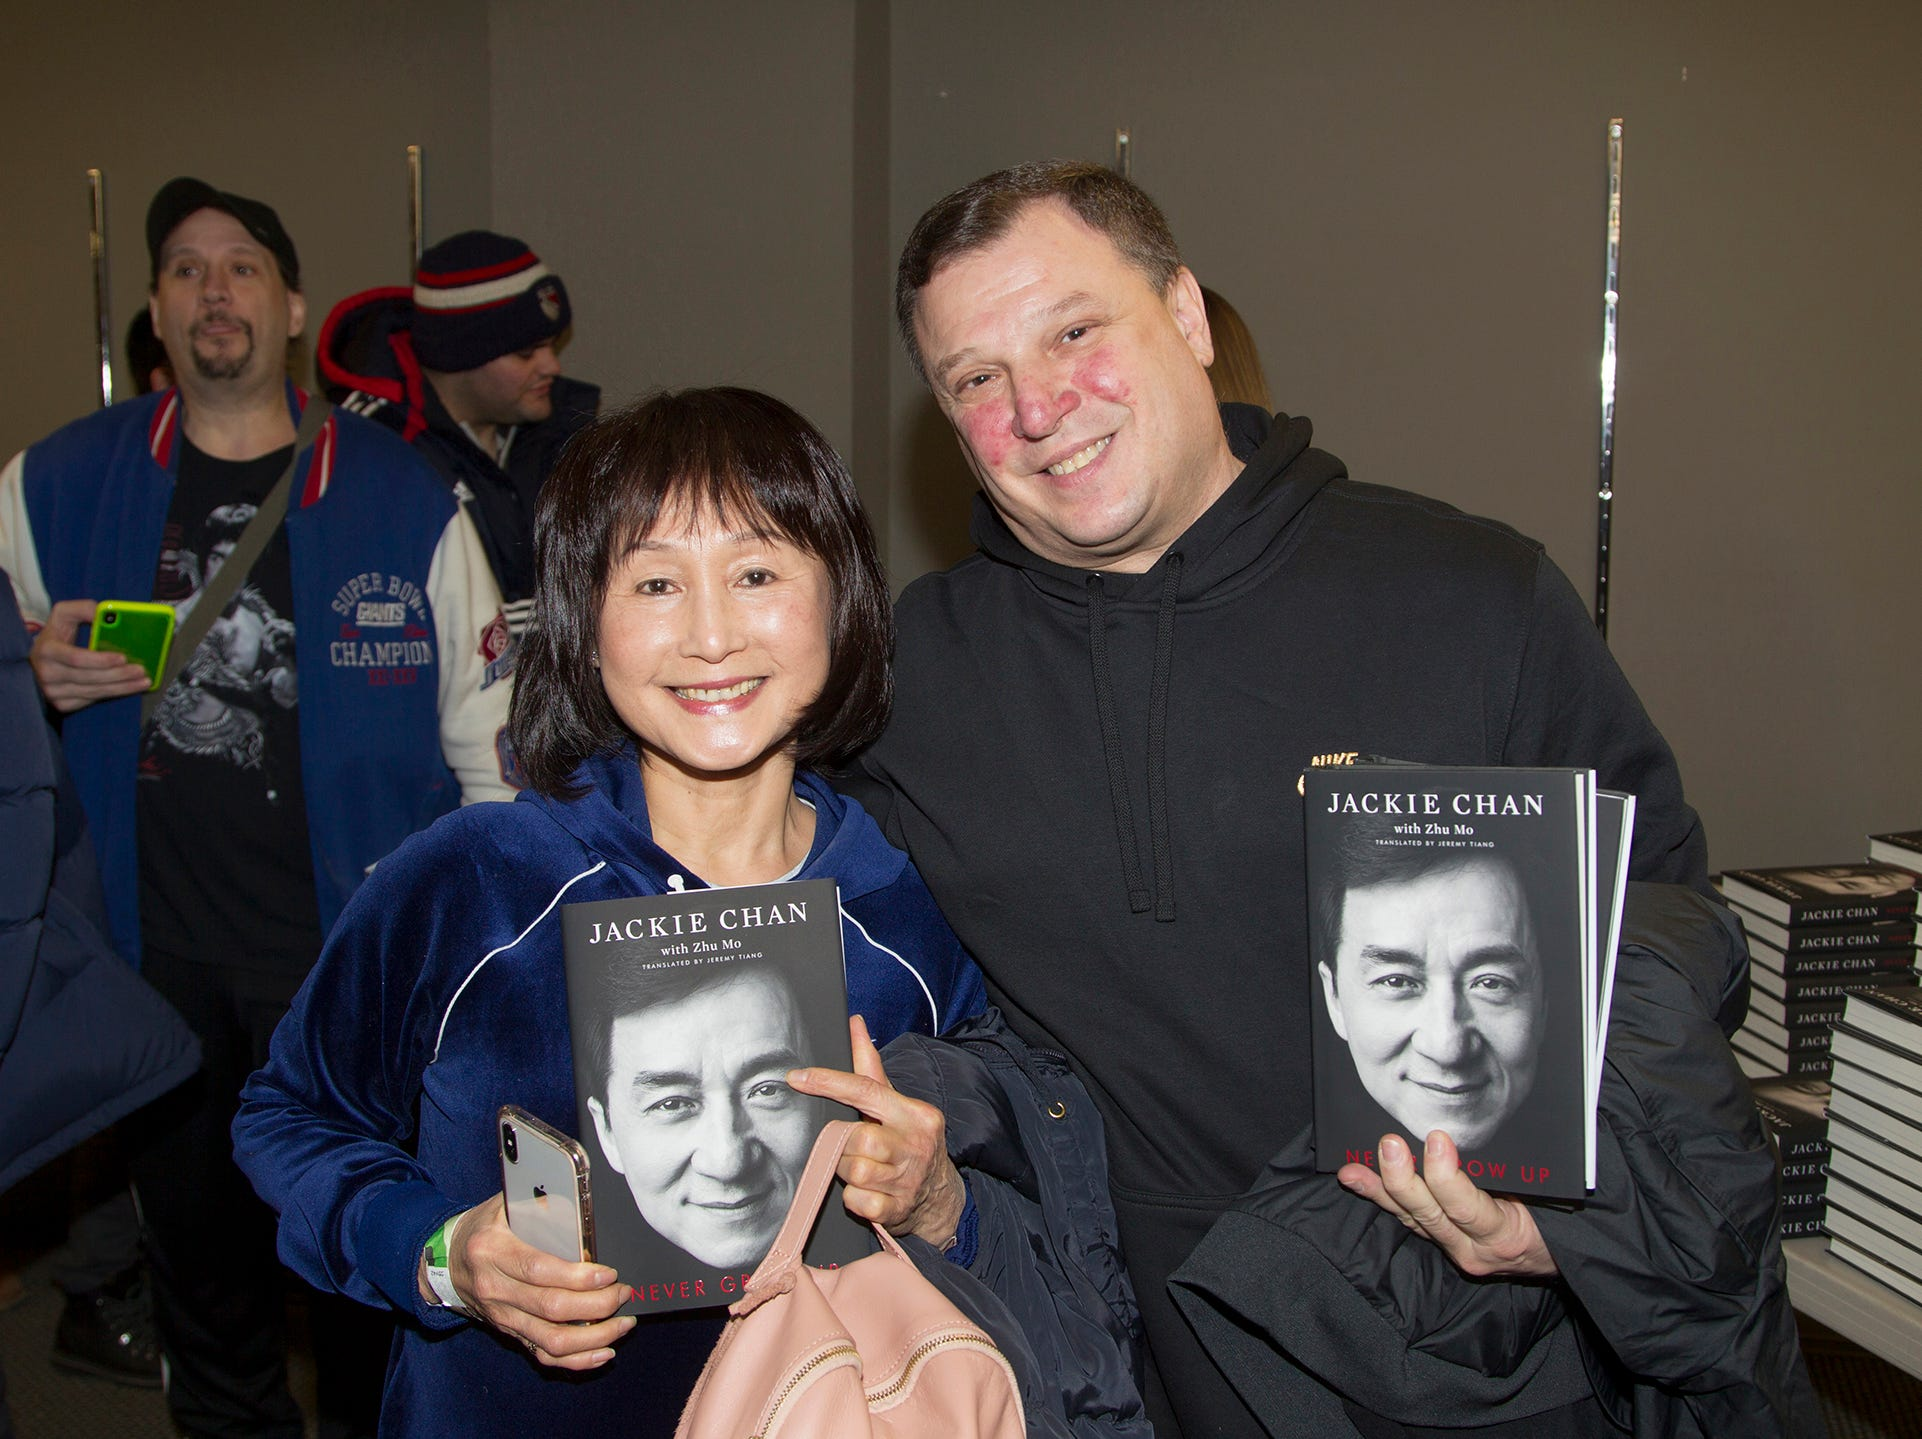 """Judy and Jake. Jackie Chan greets fans at Bookends in Ridgewood while signing his new book, """"Never Grow Up."""" 01/21/2019"""